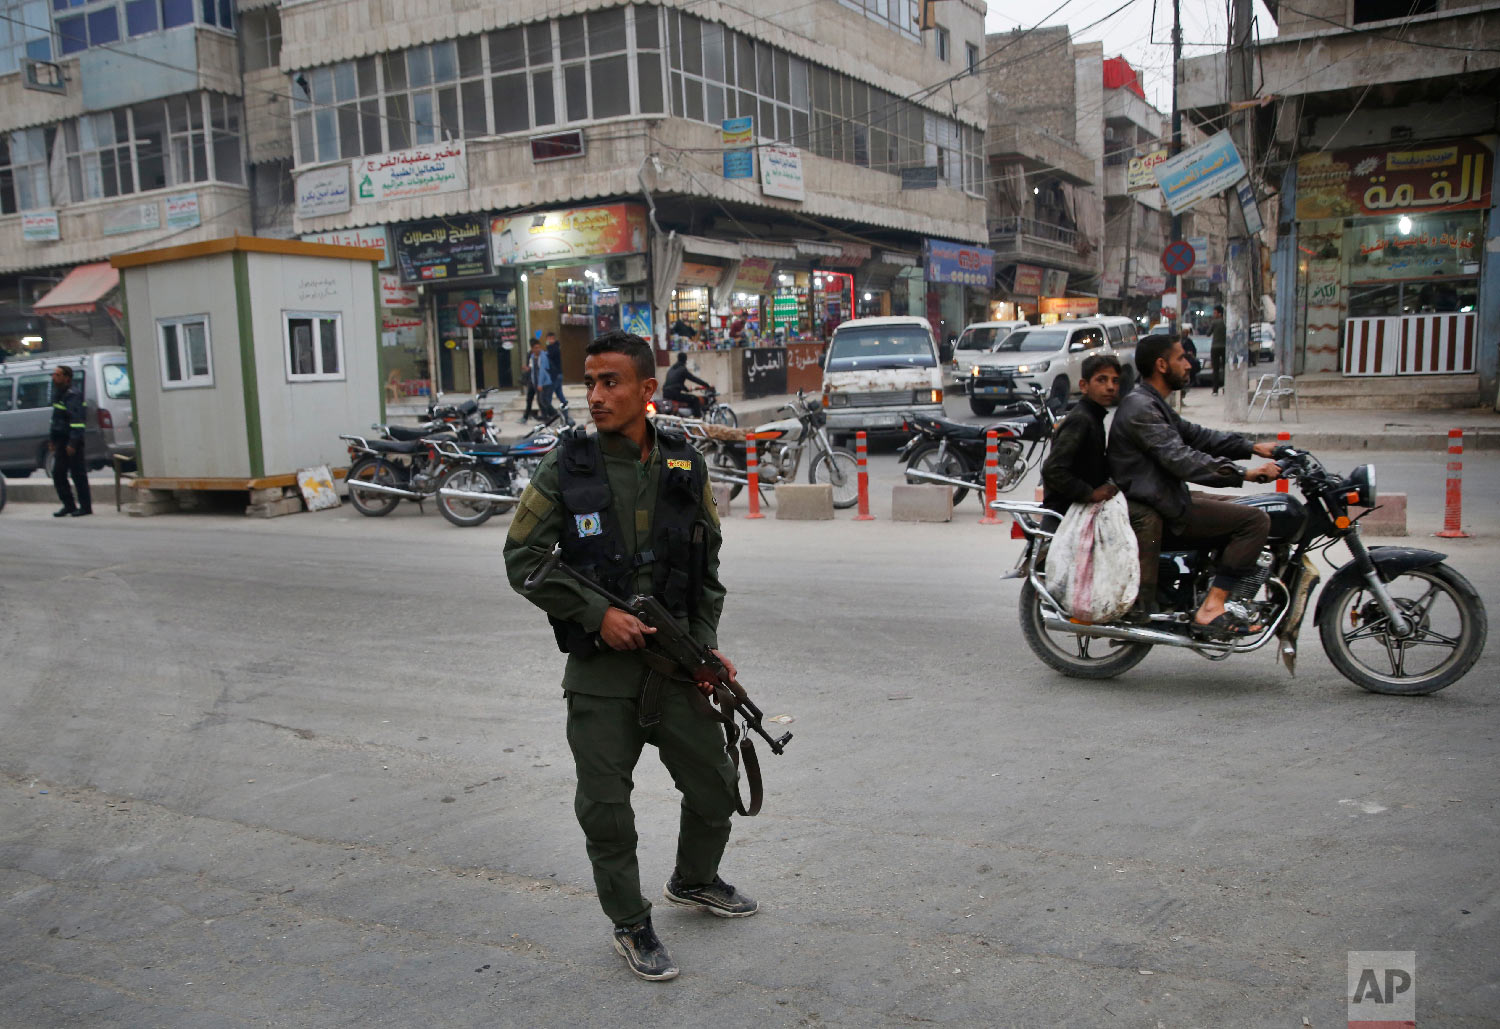 In this photo taken on Wednesday, March 28, 2018, a member of the Kurdish internal security forces patrols a commercial street in Manbij, north Syria. (AP Photo/Hussein Malla)